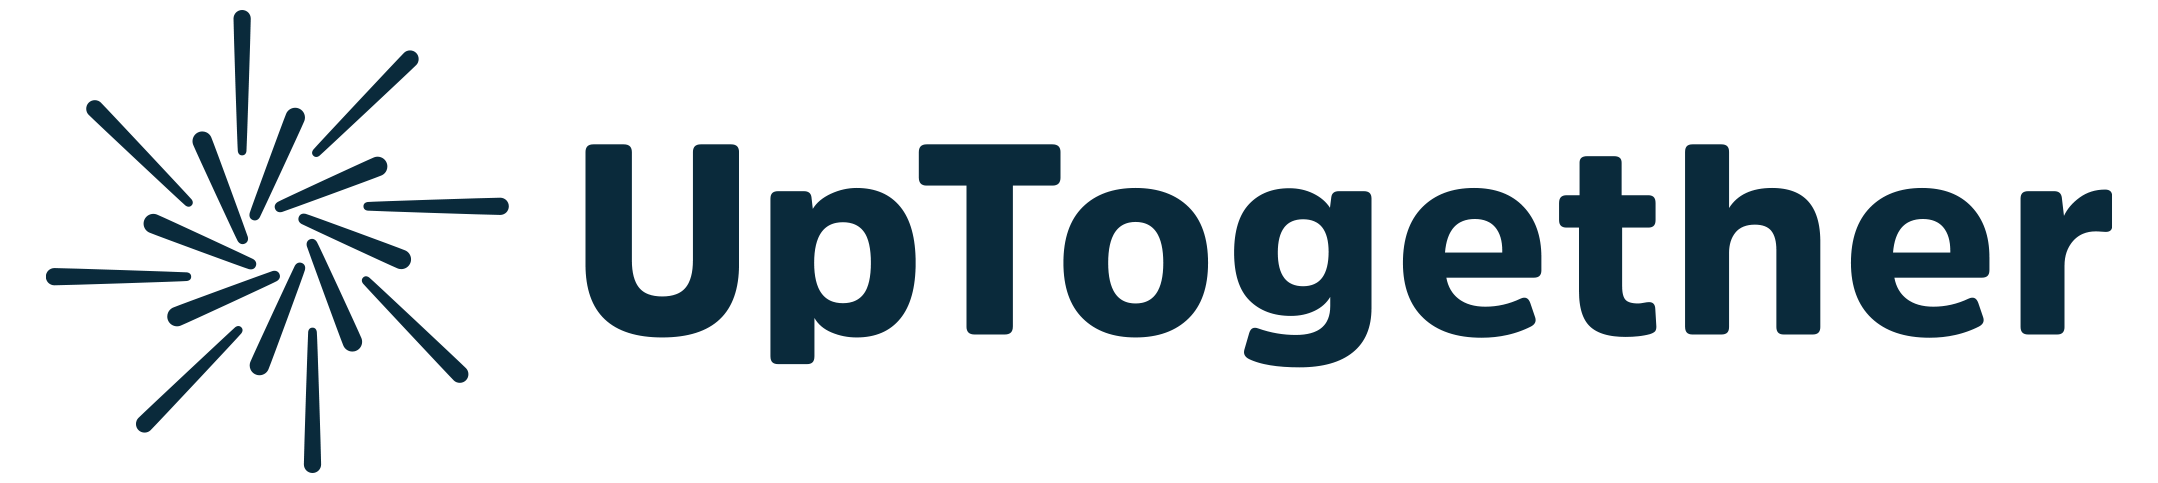 Logo uptogether startup à impact positif